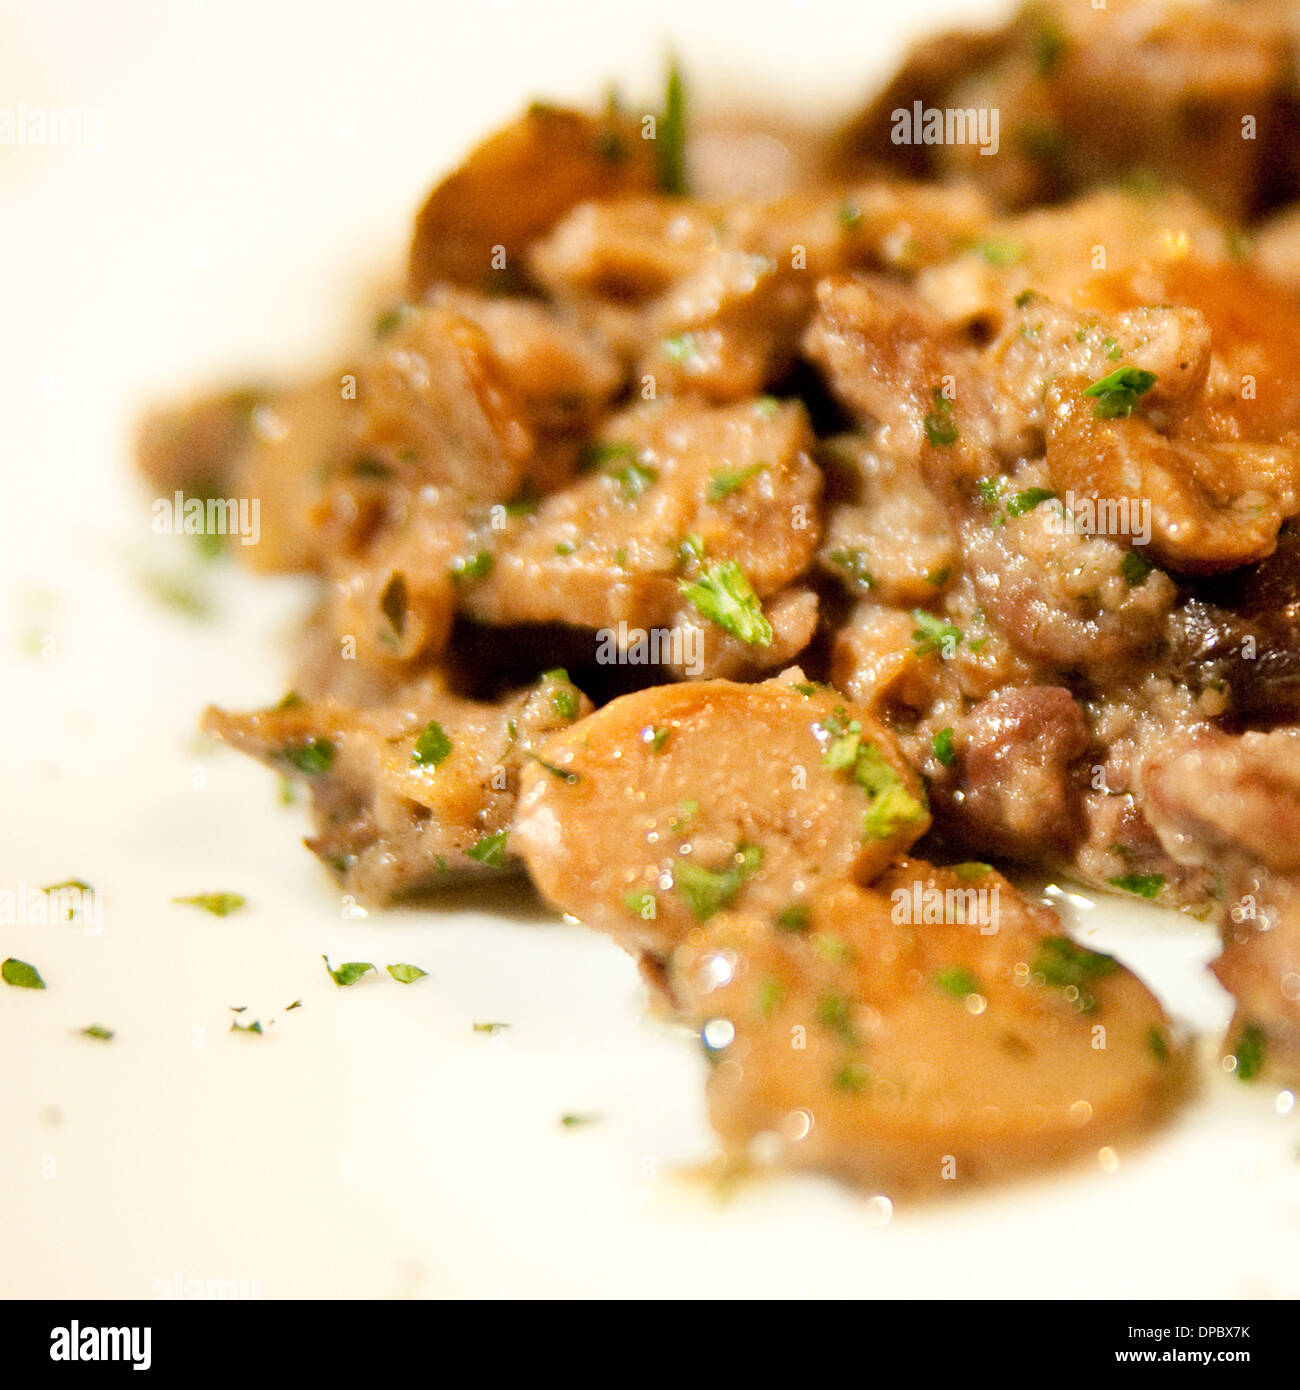 Beef Stew with Mushrooms and parsley. on white plate - Stock Image